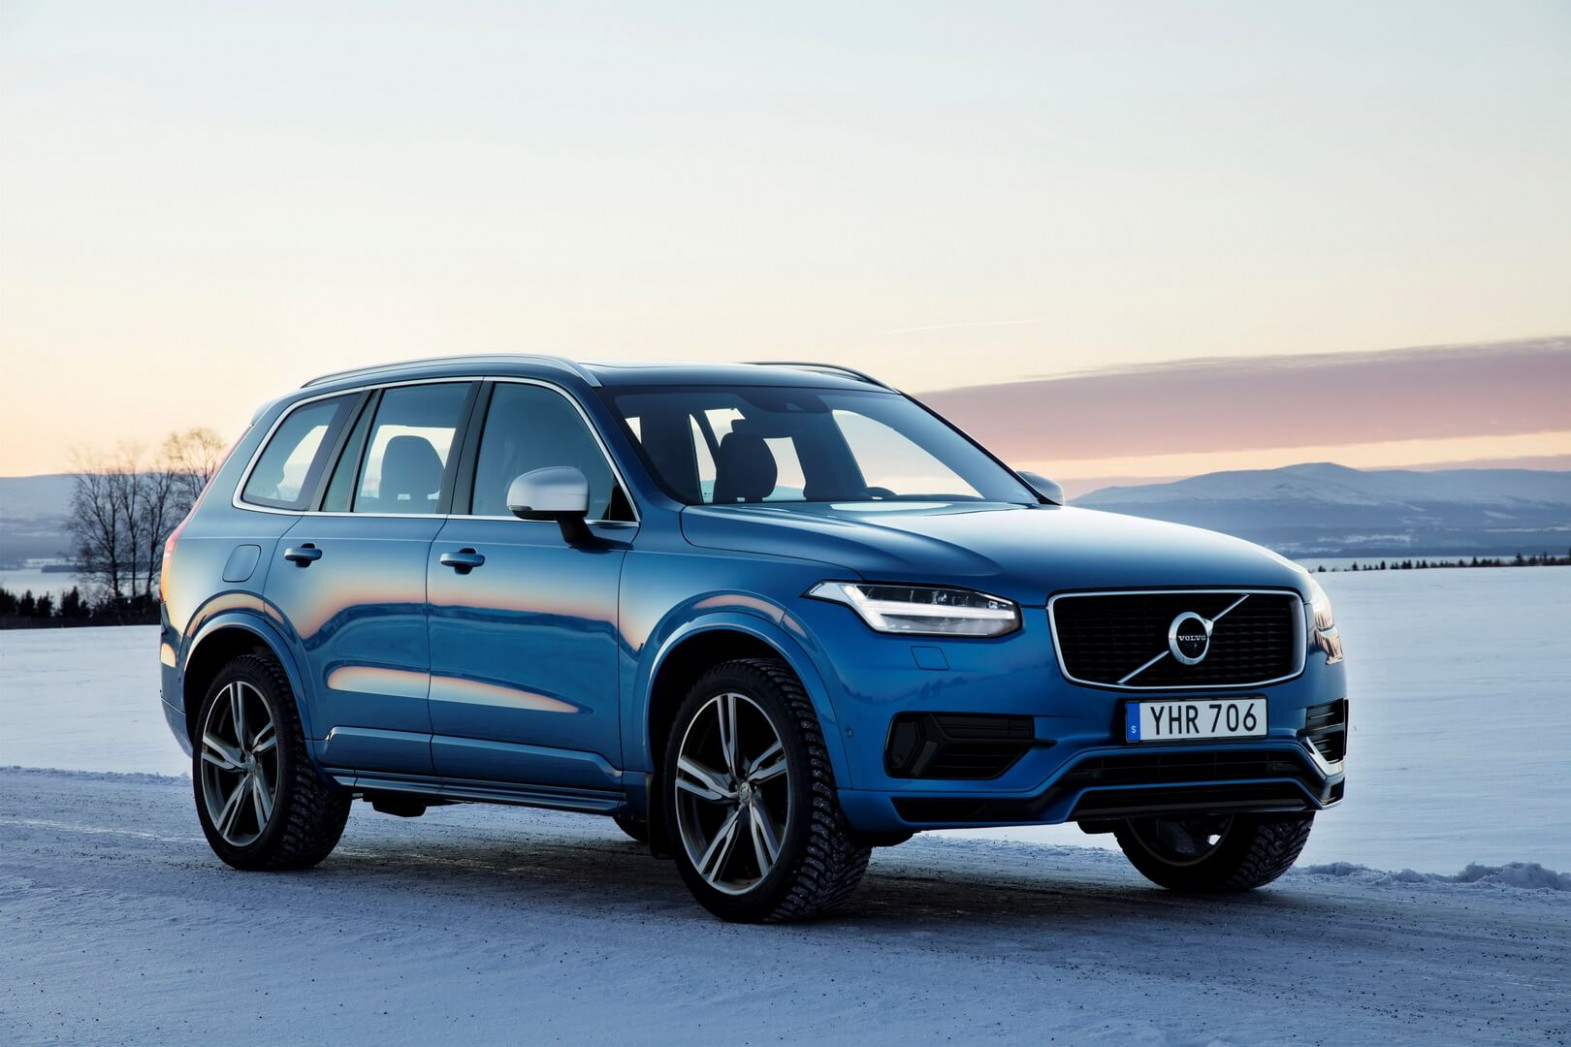 Redesign and Concept Volvo Xc90 2022